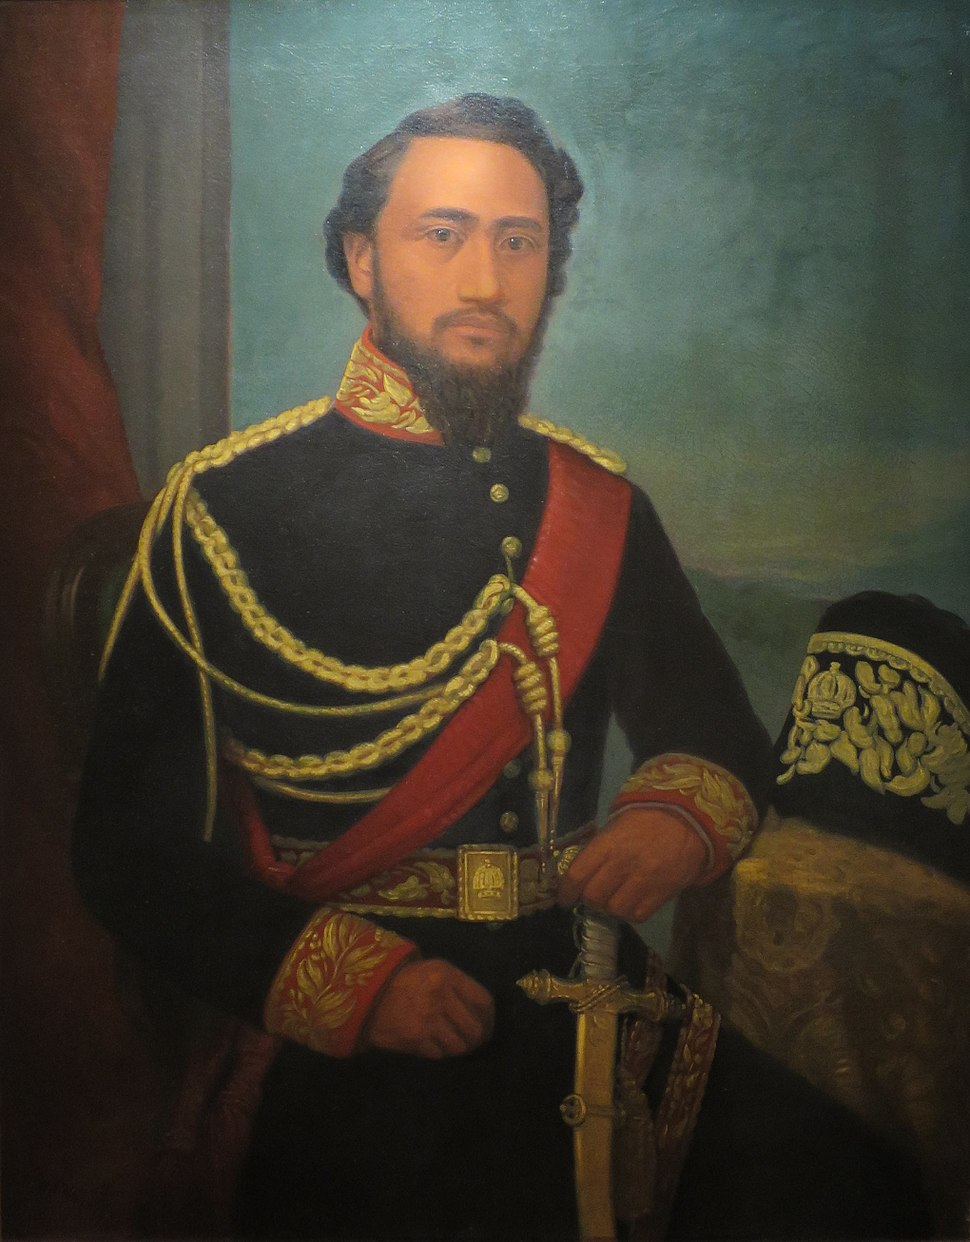 King Kamehameha IV painted by William Cogswell, Bishop Museum